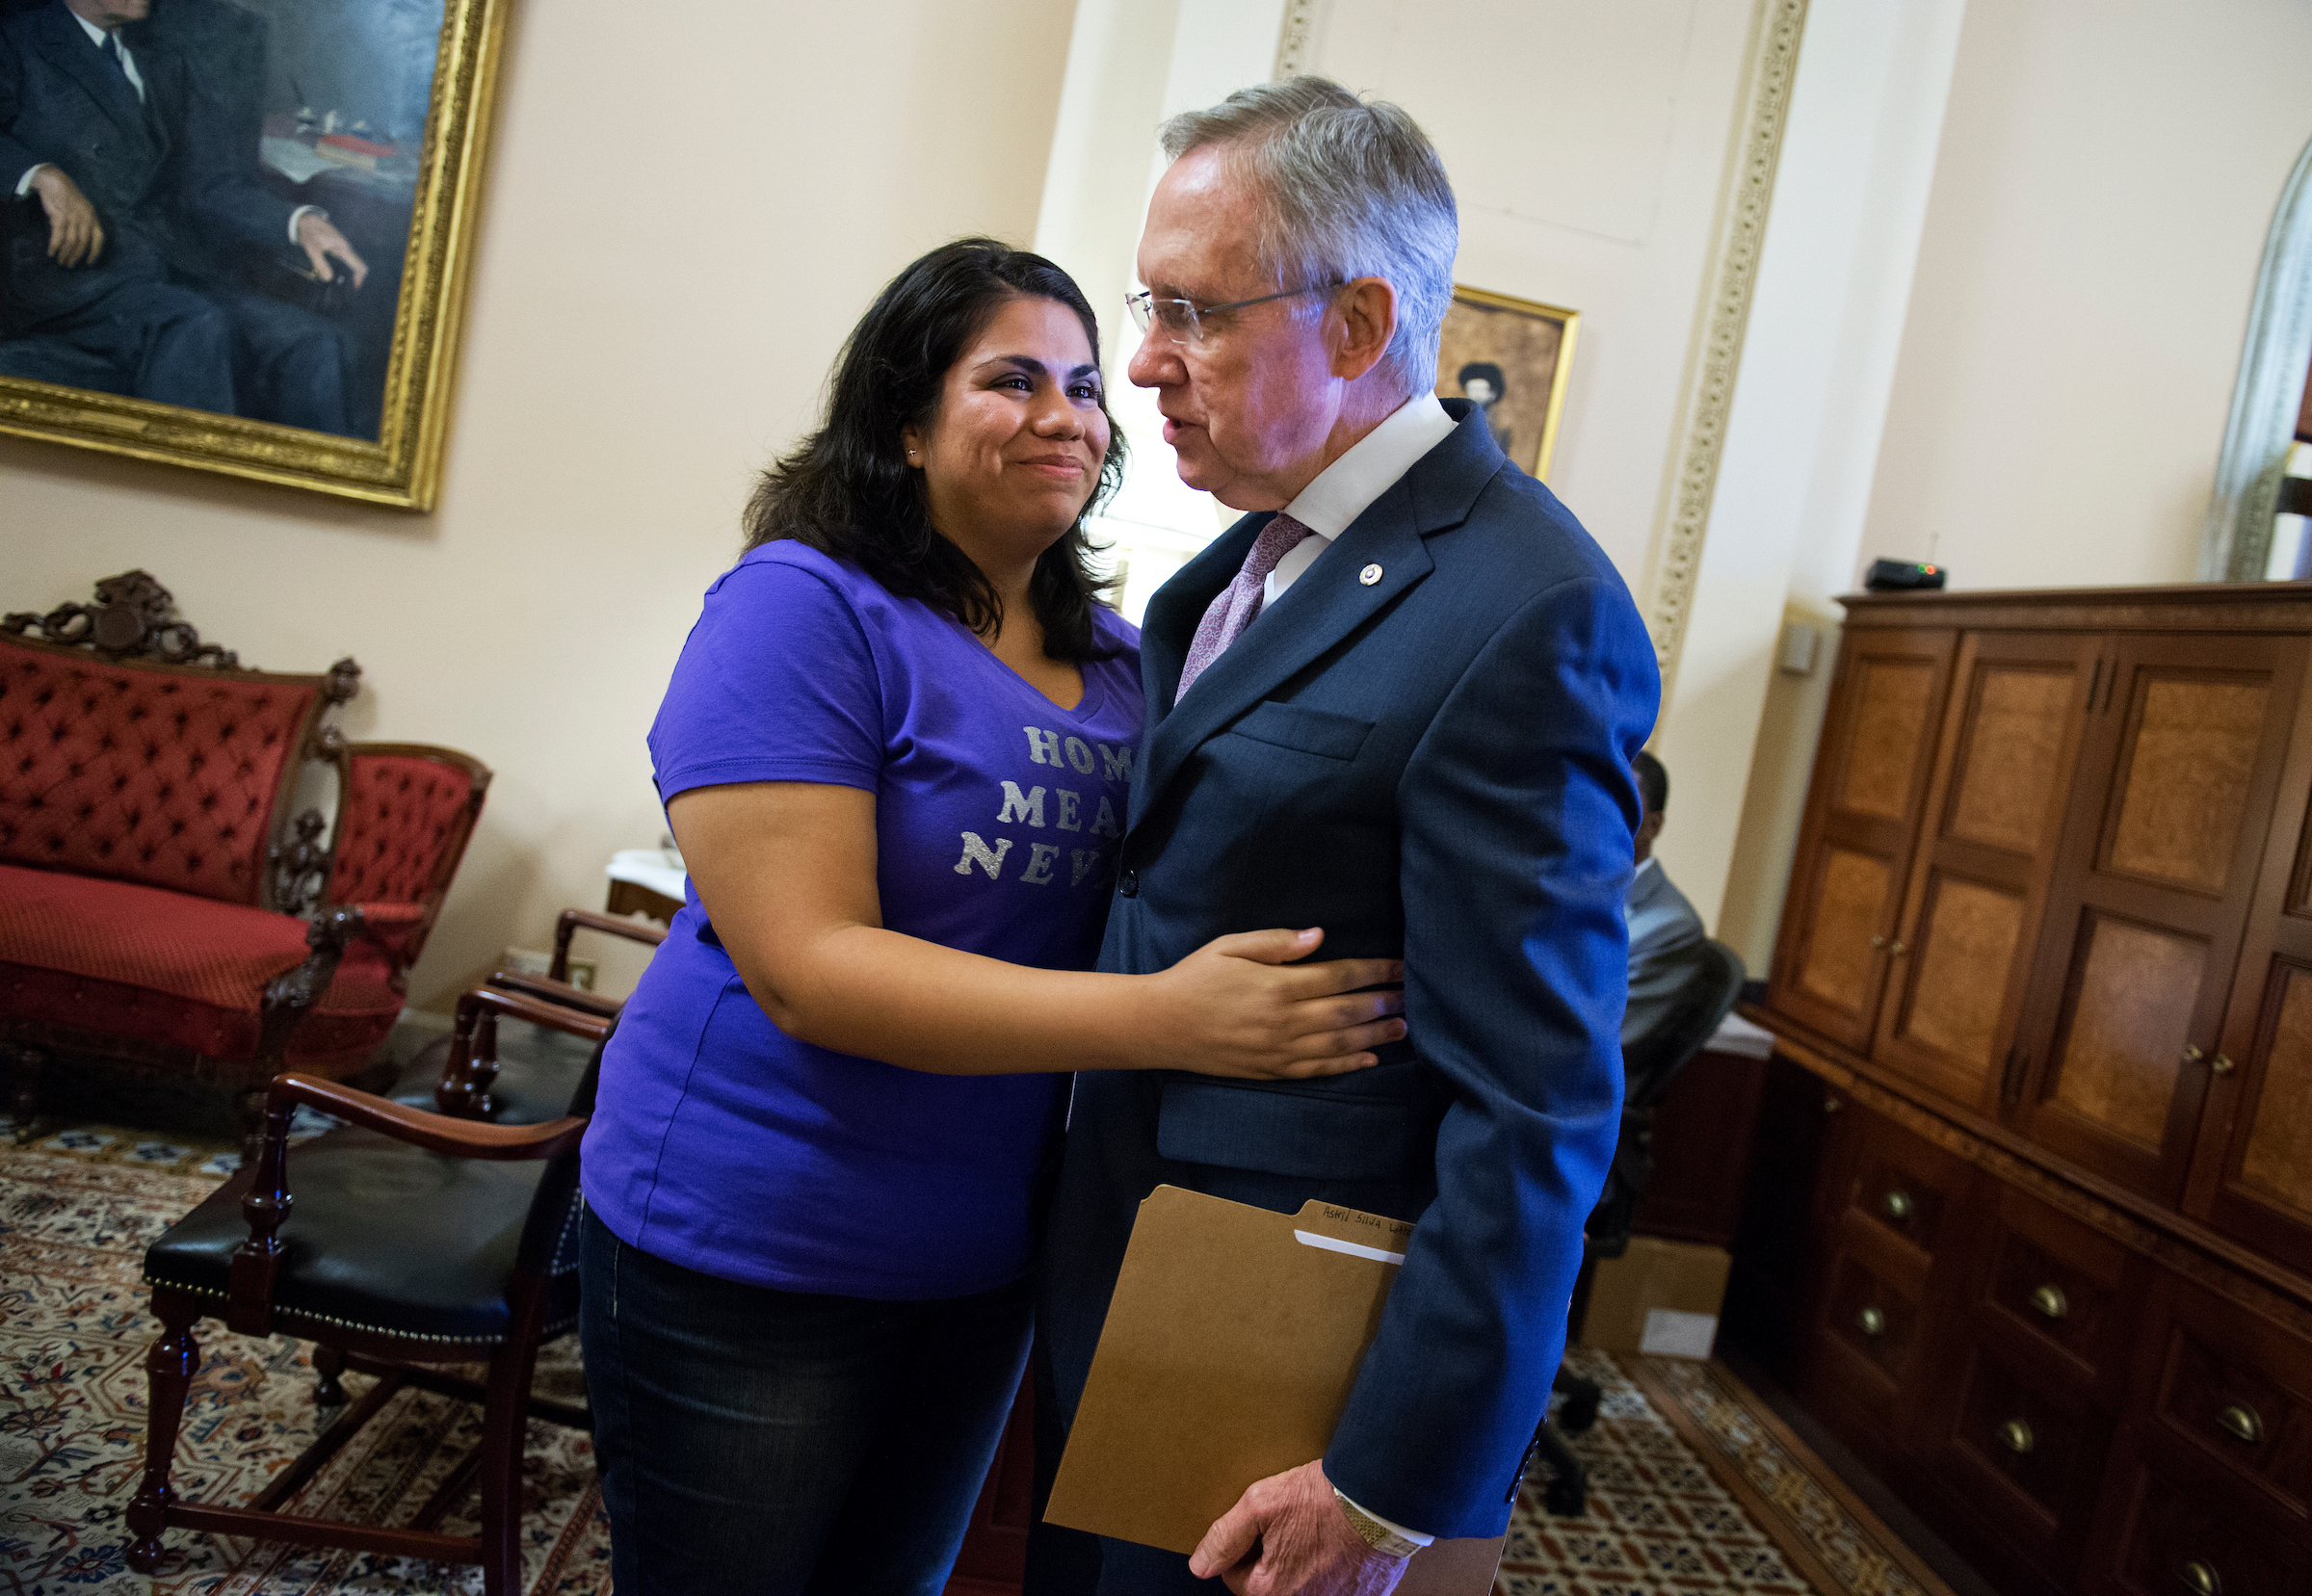 Astrid Silva of Nevada, pictured with former Senate Majority Leader Harry Reid, will deliver the Spanish language response to Trump's address. (Photo By Tom Williams/CQ Roll Call file photo)